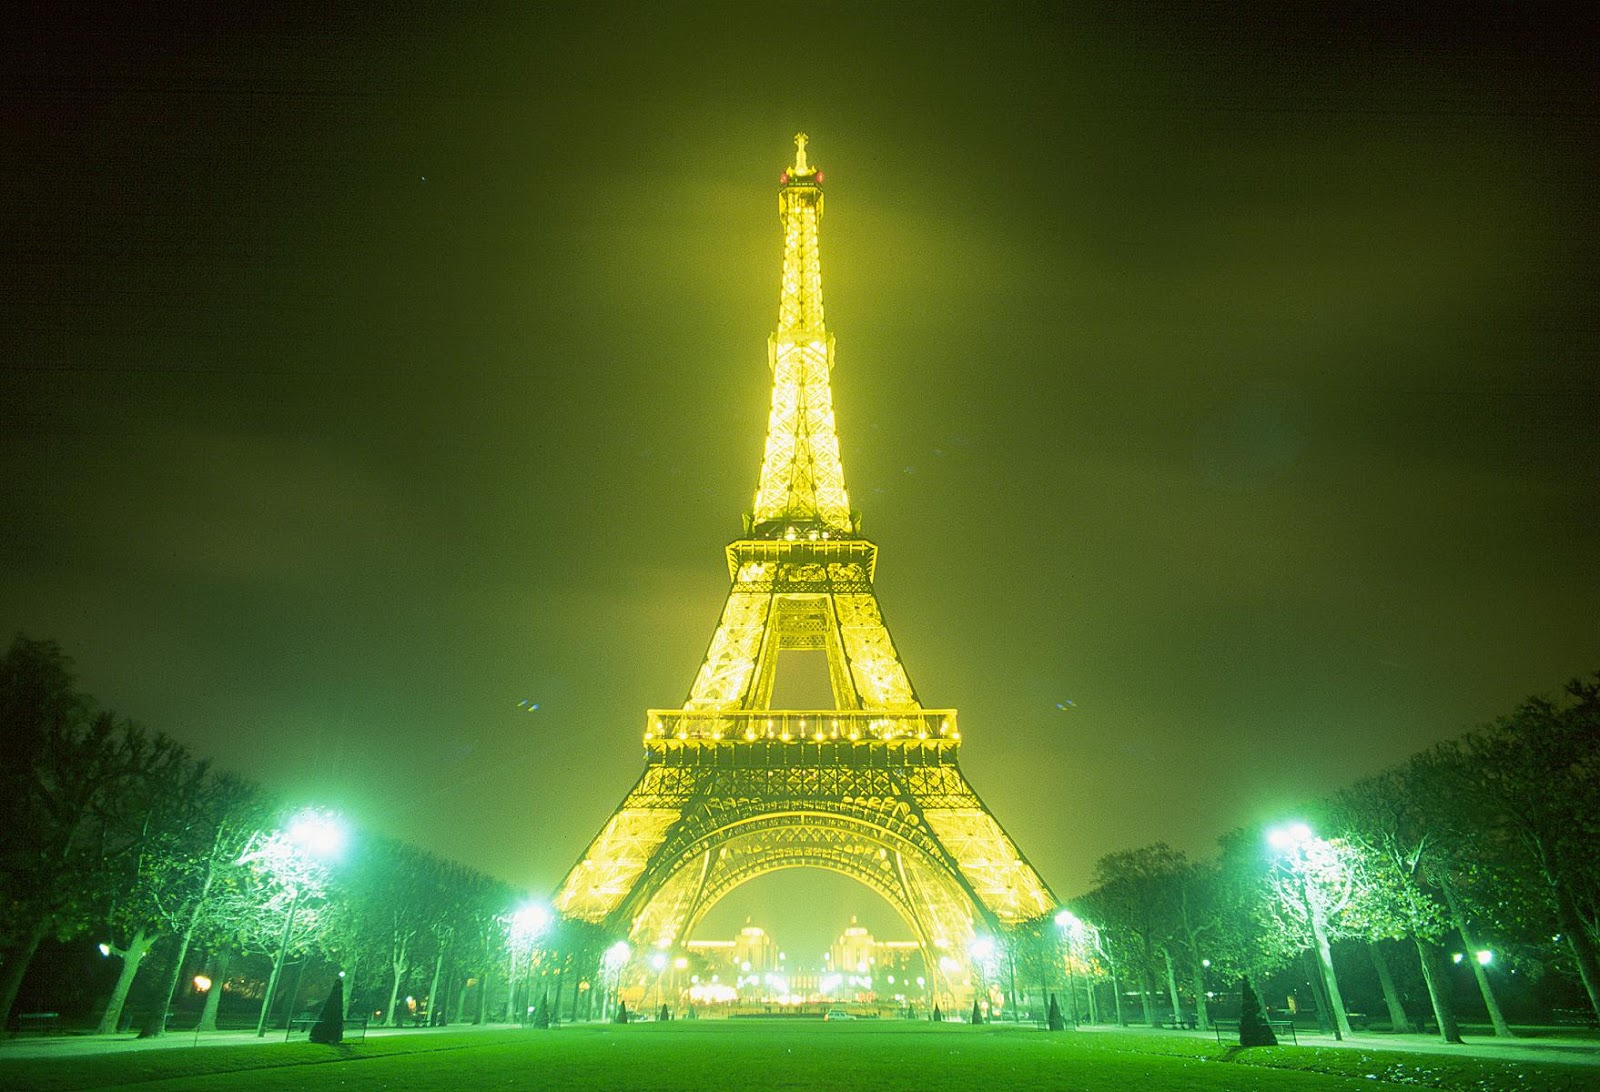 eiffel tower - photo #19